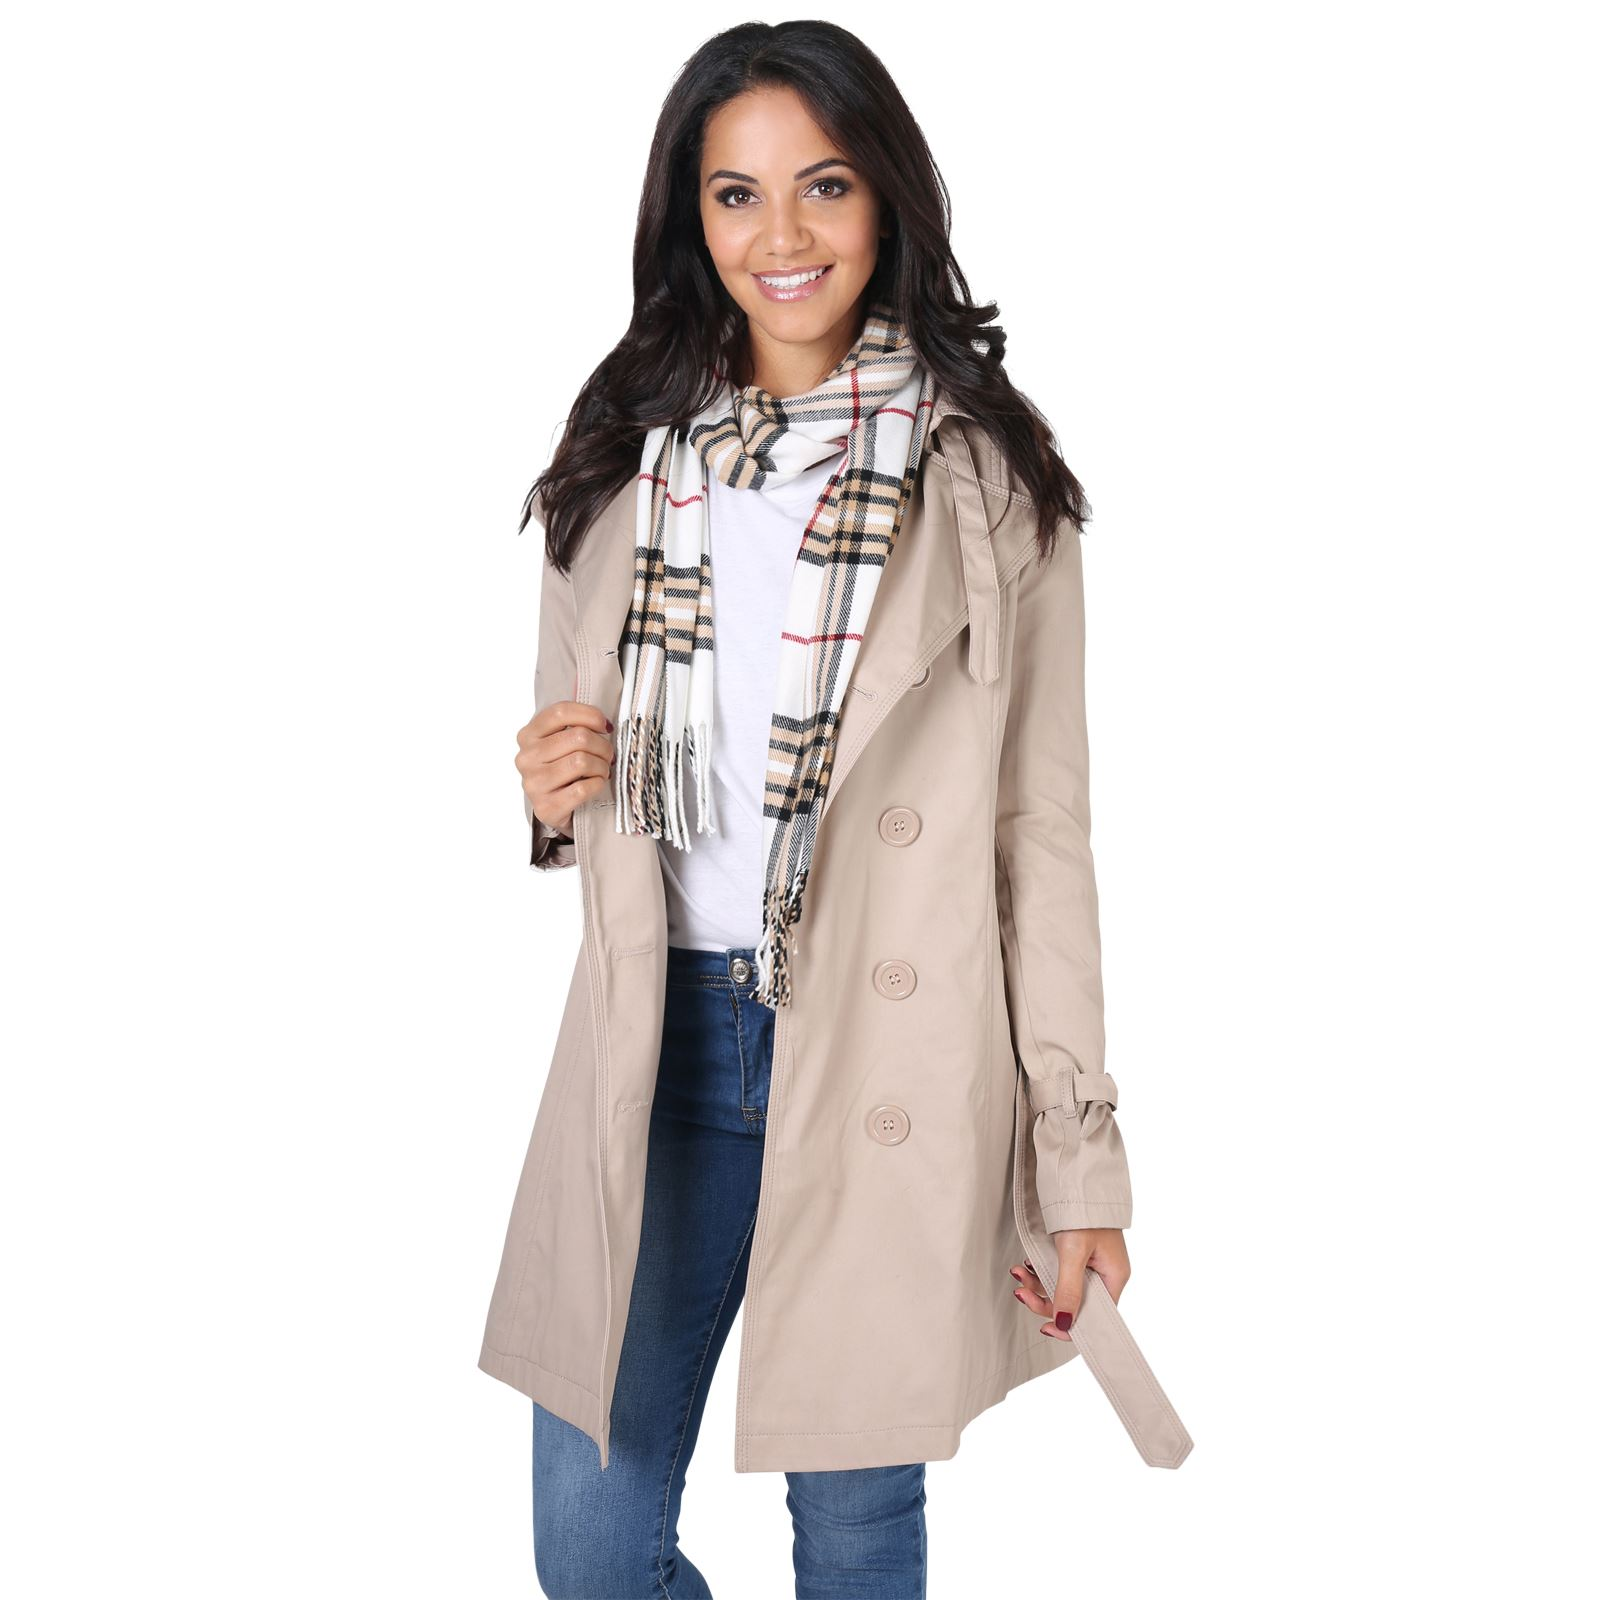 Womens-Stylish-Retro-Tailored-Trench-Mac-Coat-Double-Breasted-Jacket-Autumn-8-18